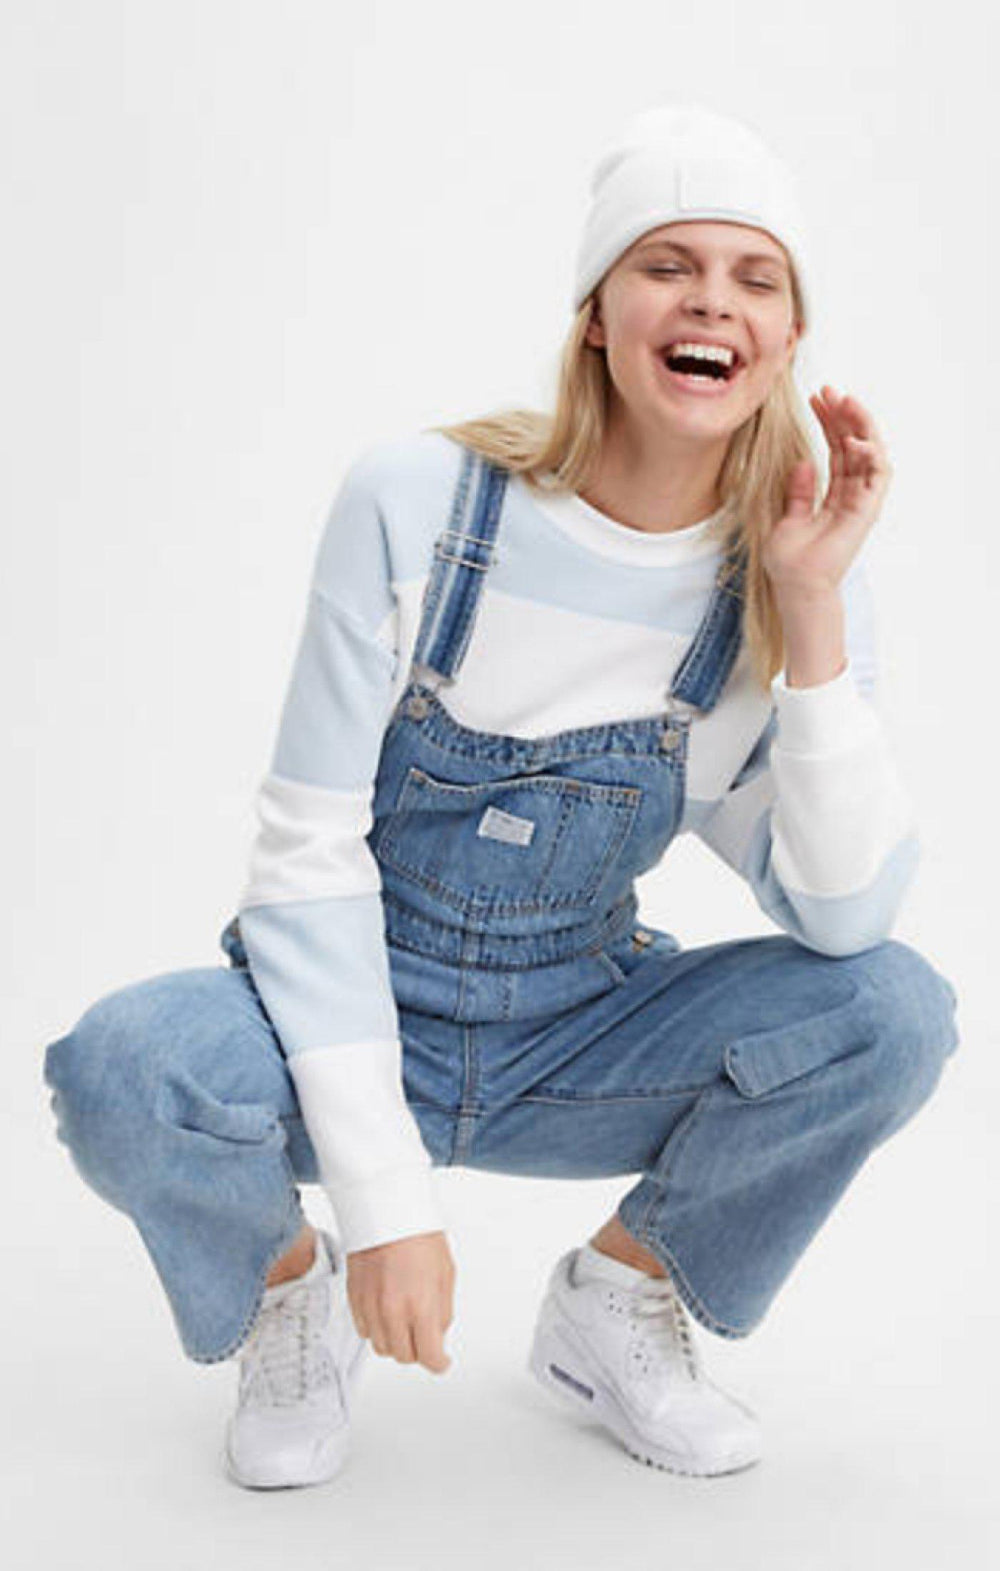 Levi's Dead Stone Vintage Overalls-The Trendy Walrus